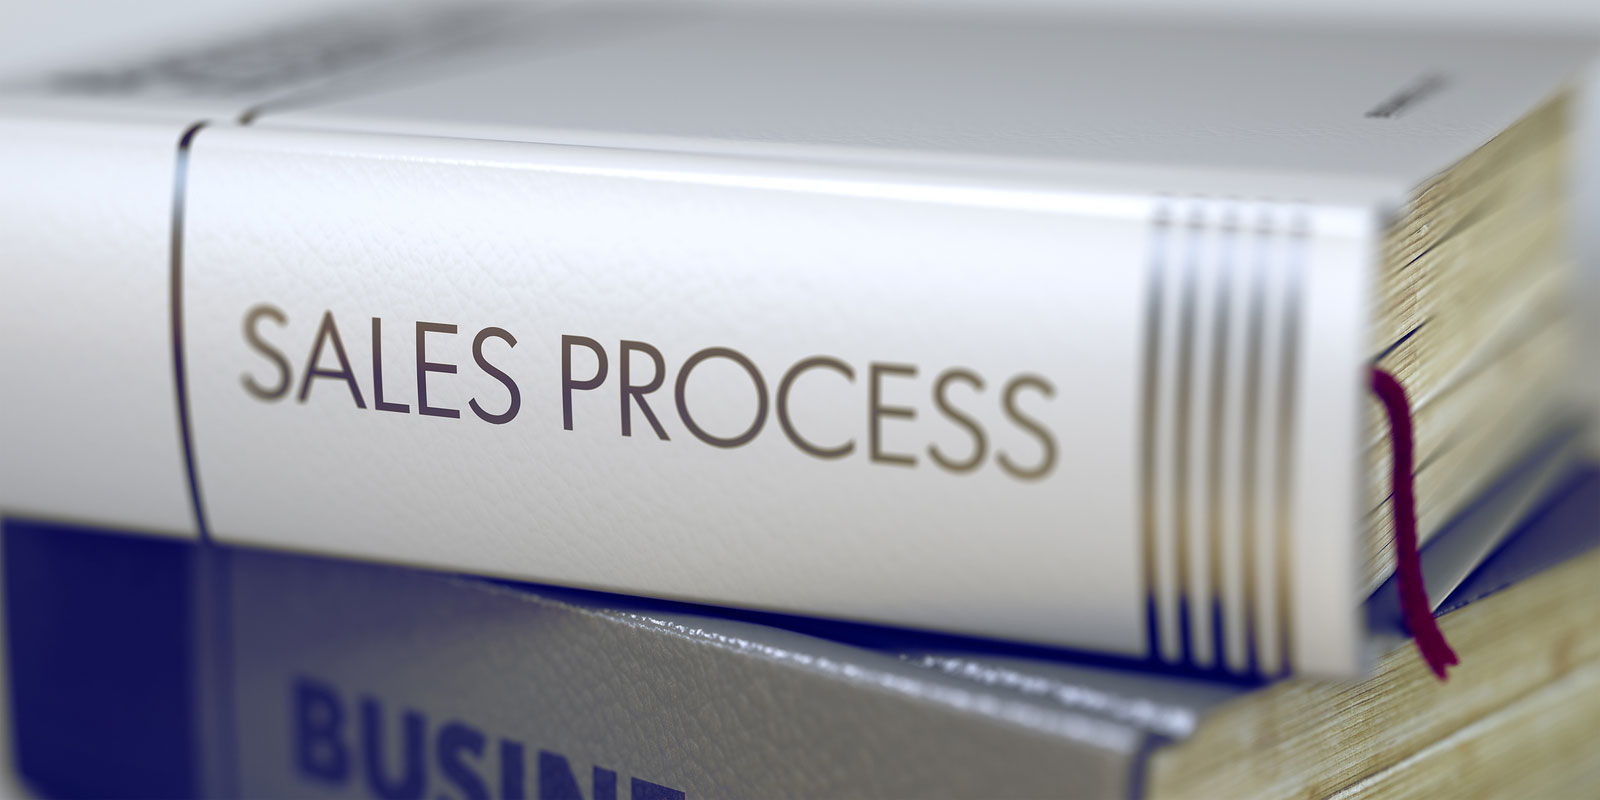 Sales process book